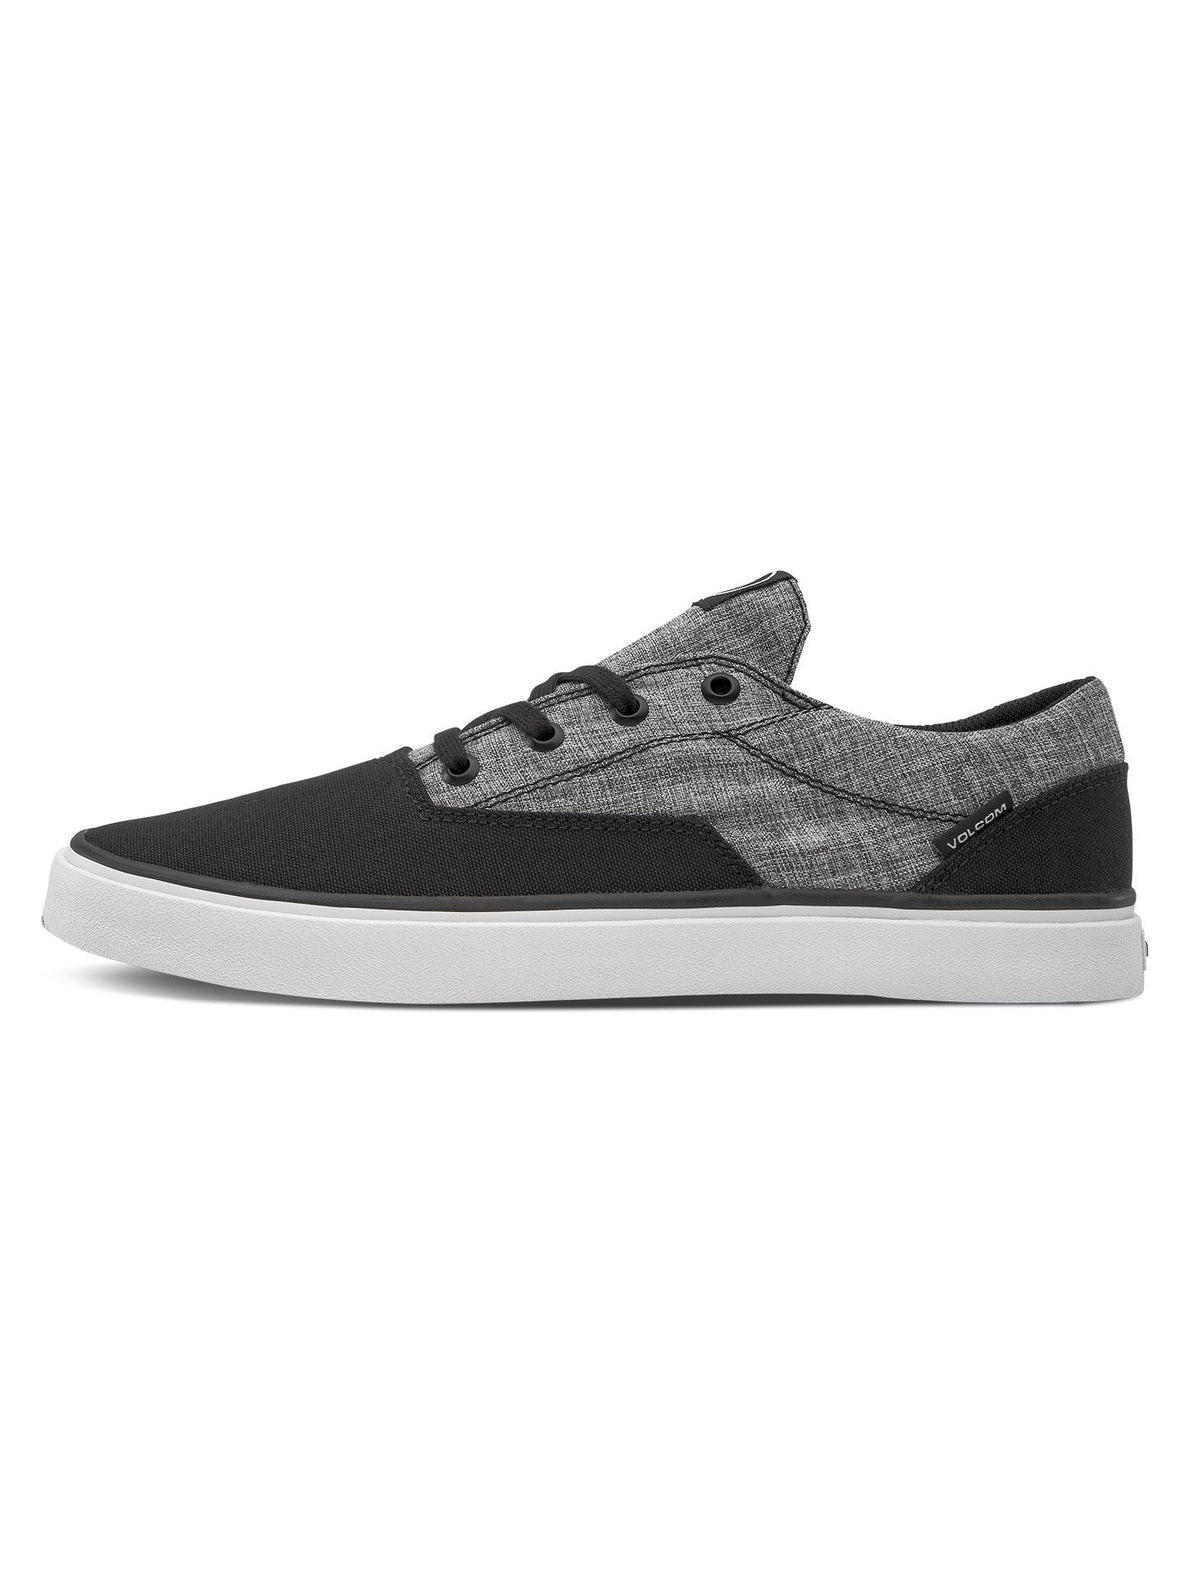 Draw Lo Shoe - Heather Black (V4031710_HBK) [1]